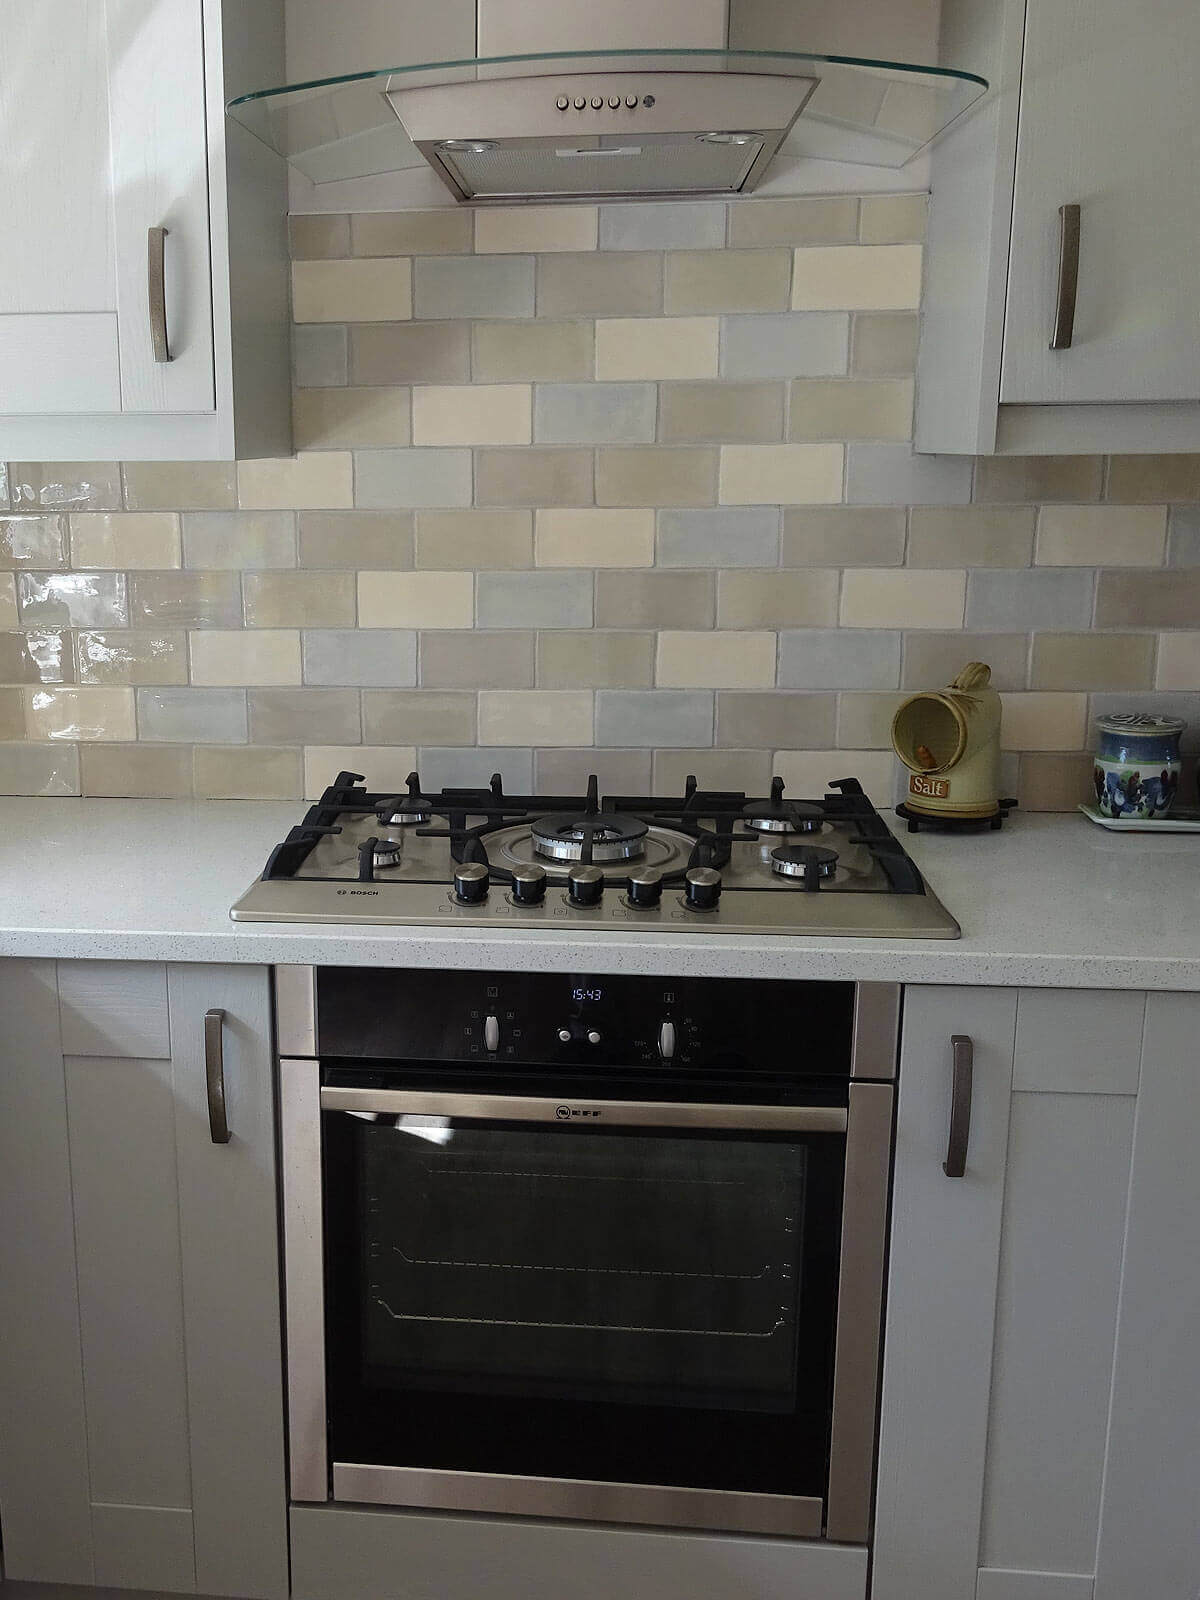 Midlands Kitchen Tiles Supplier